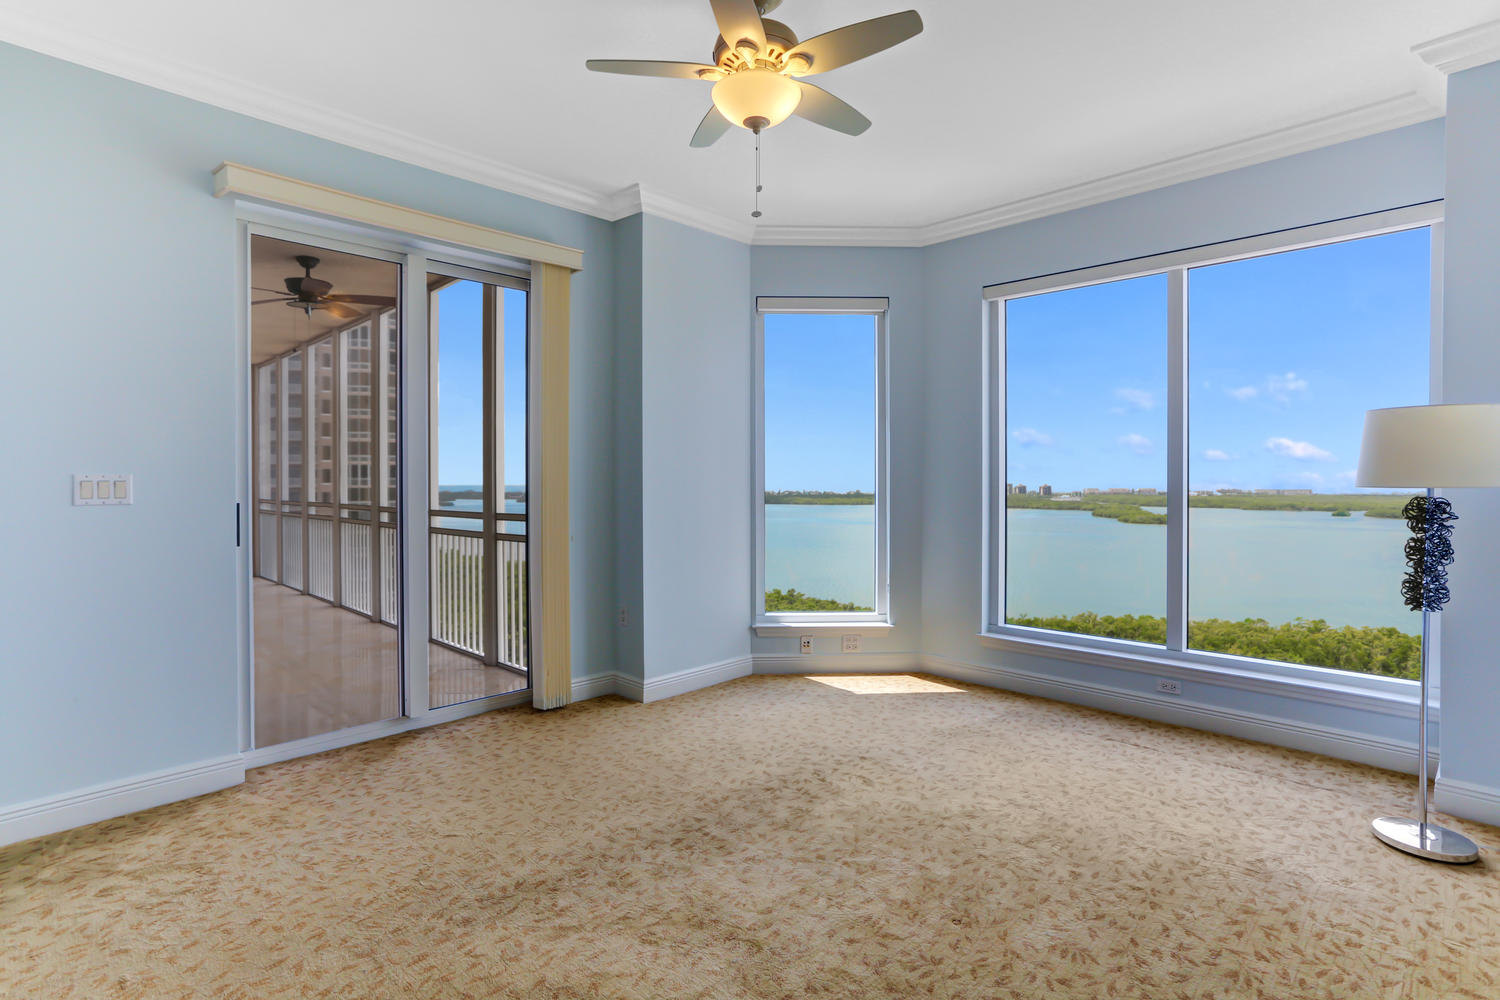 4951 Bonita Bay Blvd., Unit #1503 – ESPERIA AT BONITA BAY – Bonita Springs, FL 34134